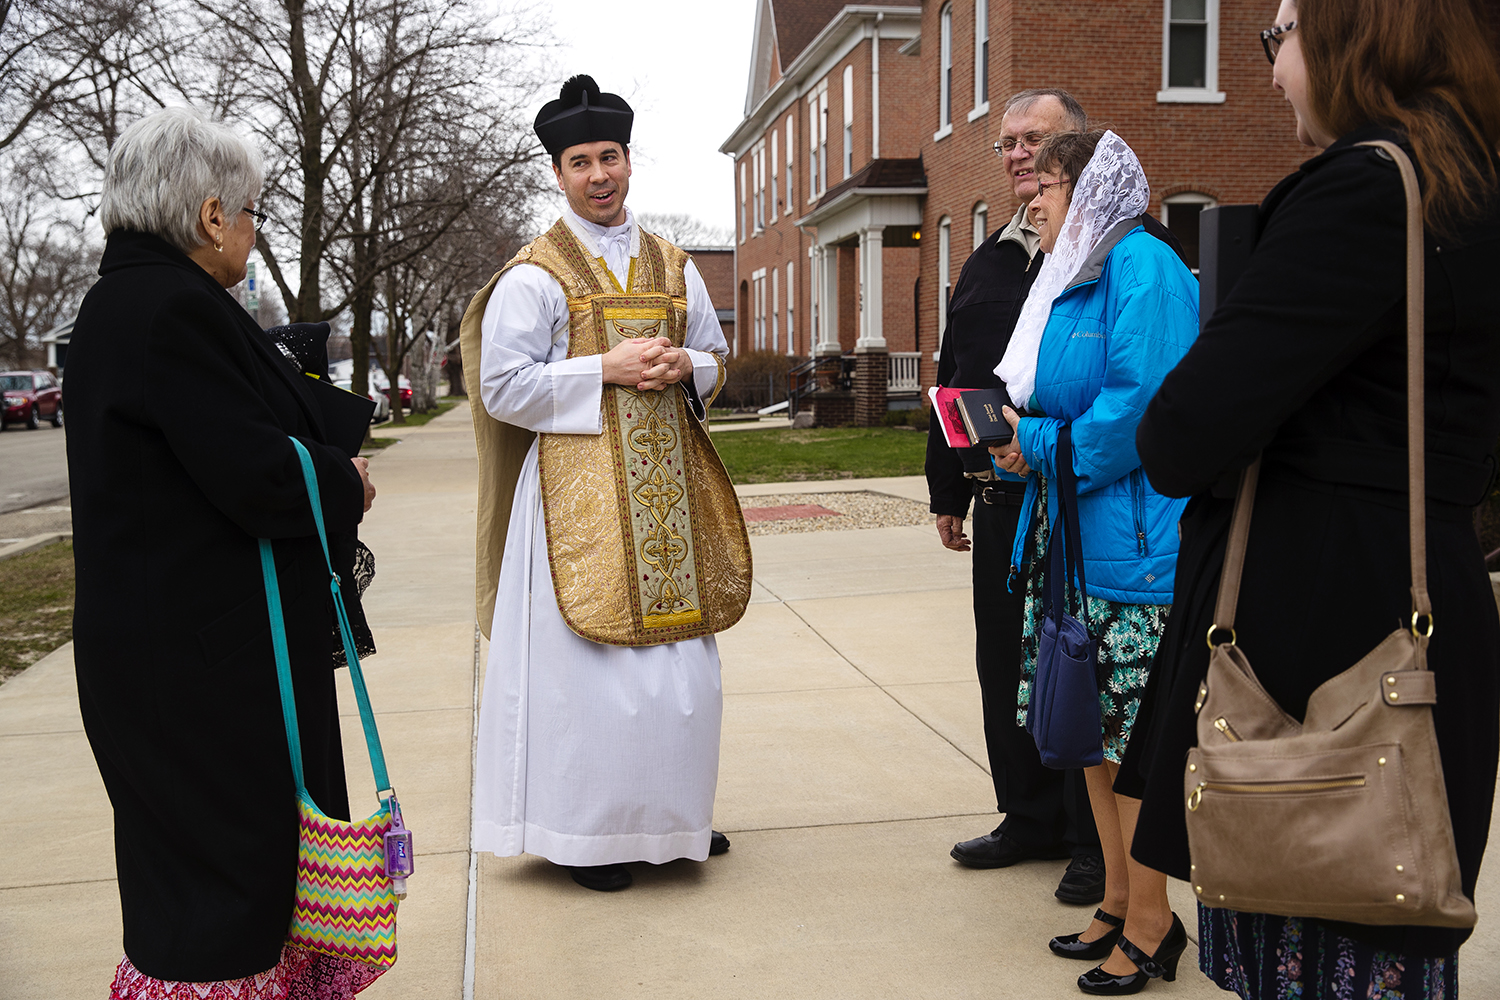 Father Trenton Rauck greets parishioners following the Latin Mass on Easter Sunday at Sacred Heart Church in Springfield, Ill., April 1, 2018. [Ted Schurter/The State Journal-Register]